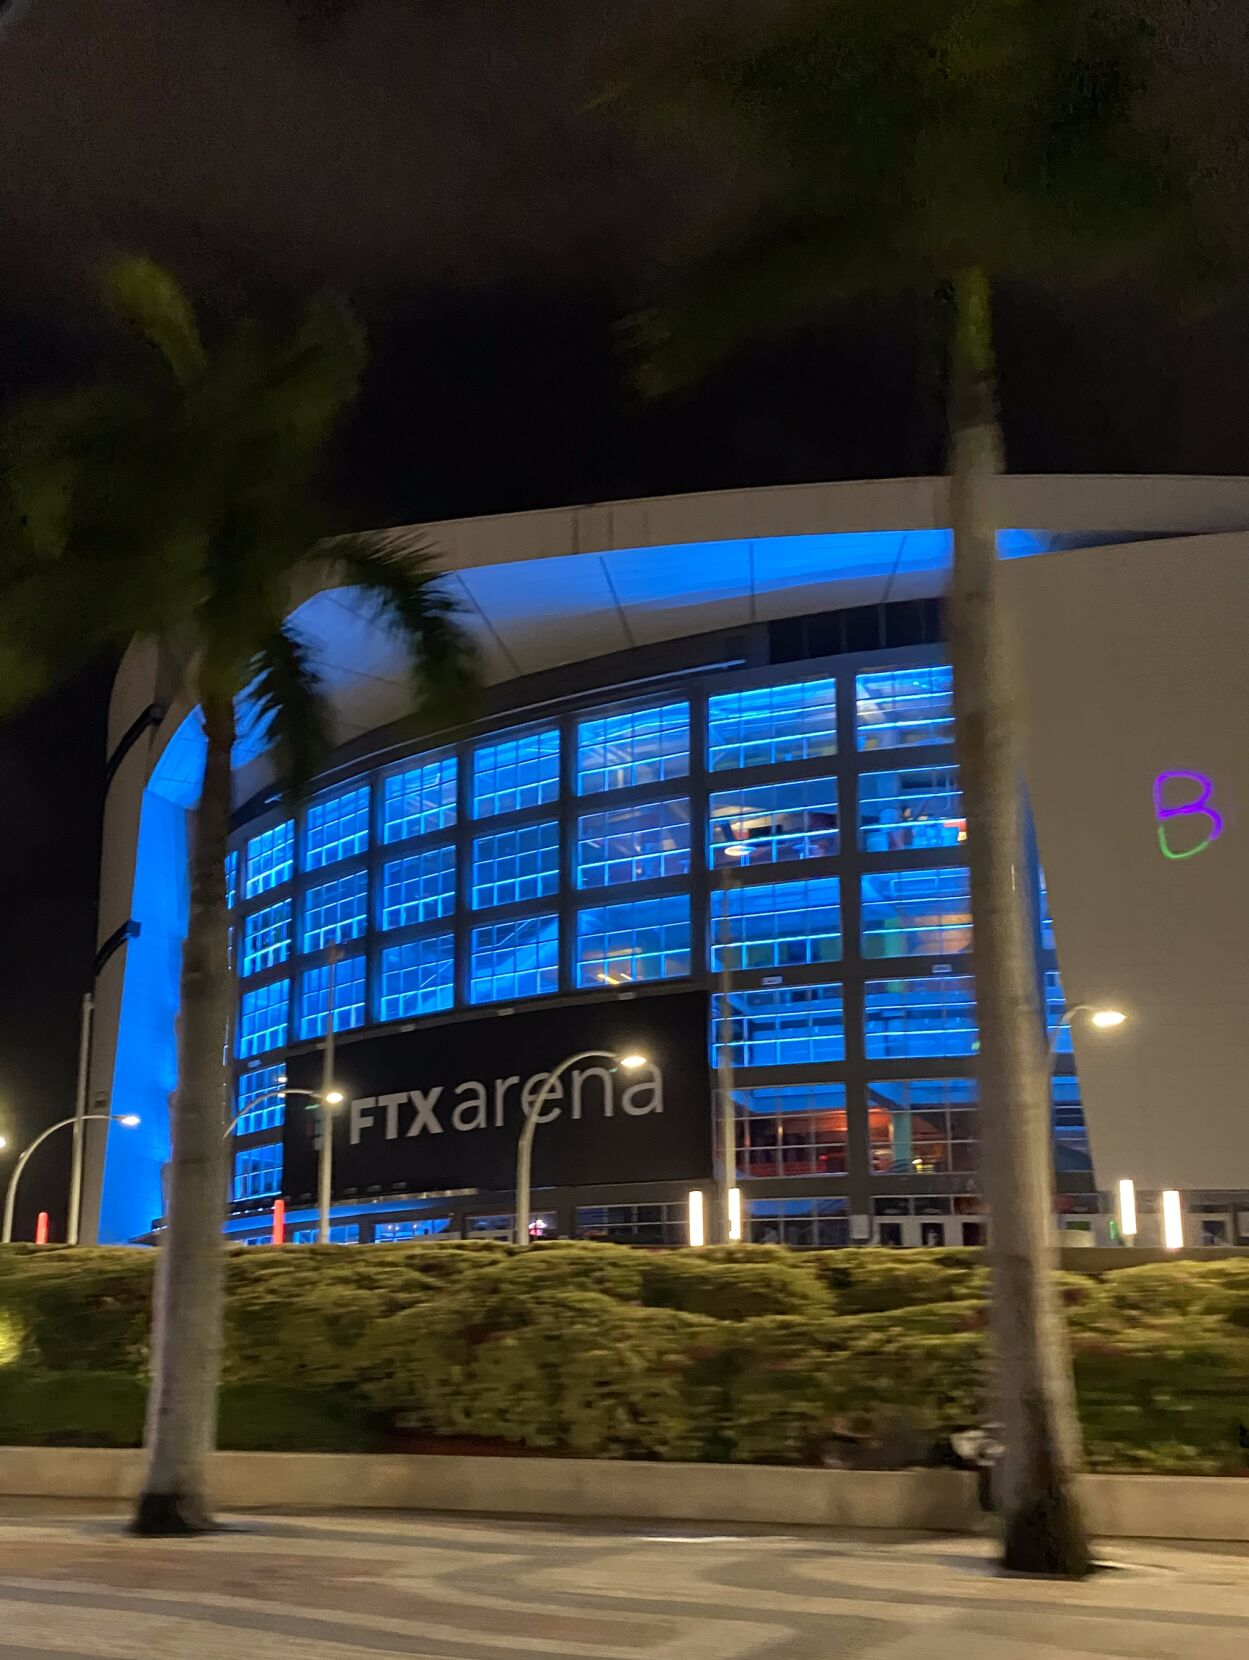 FTX Arena